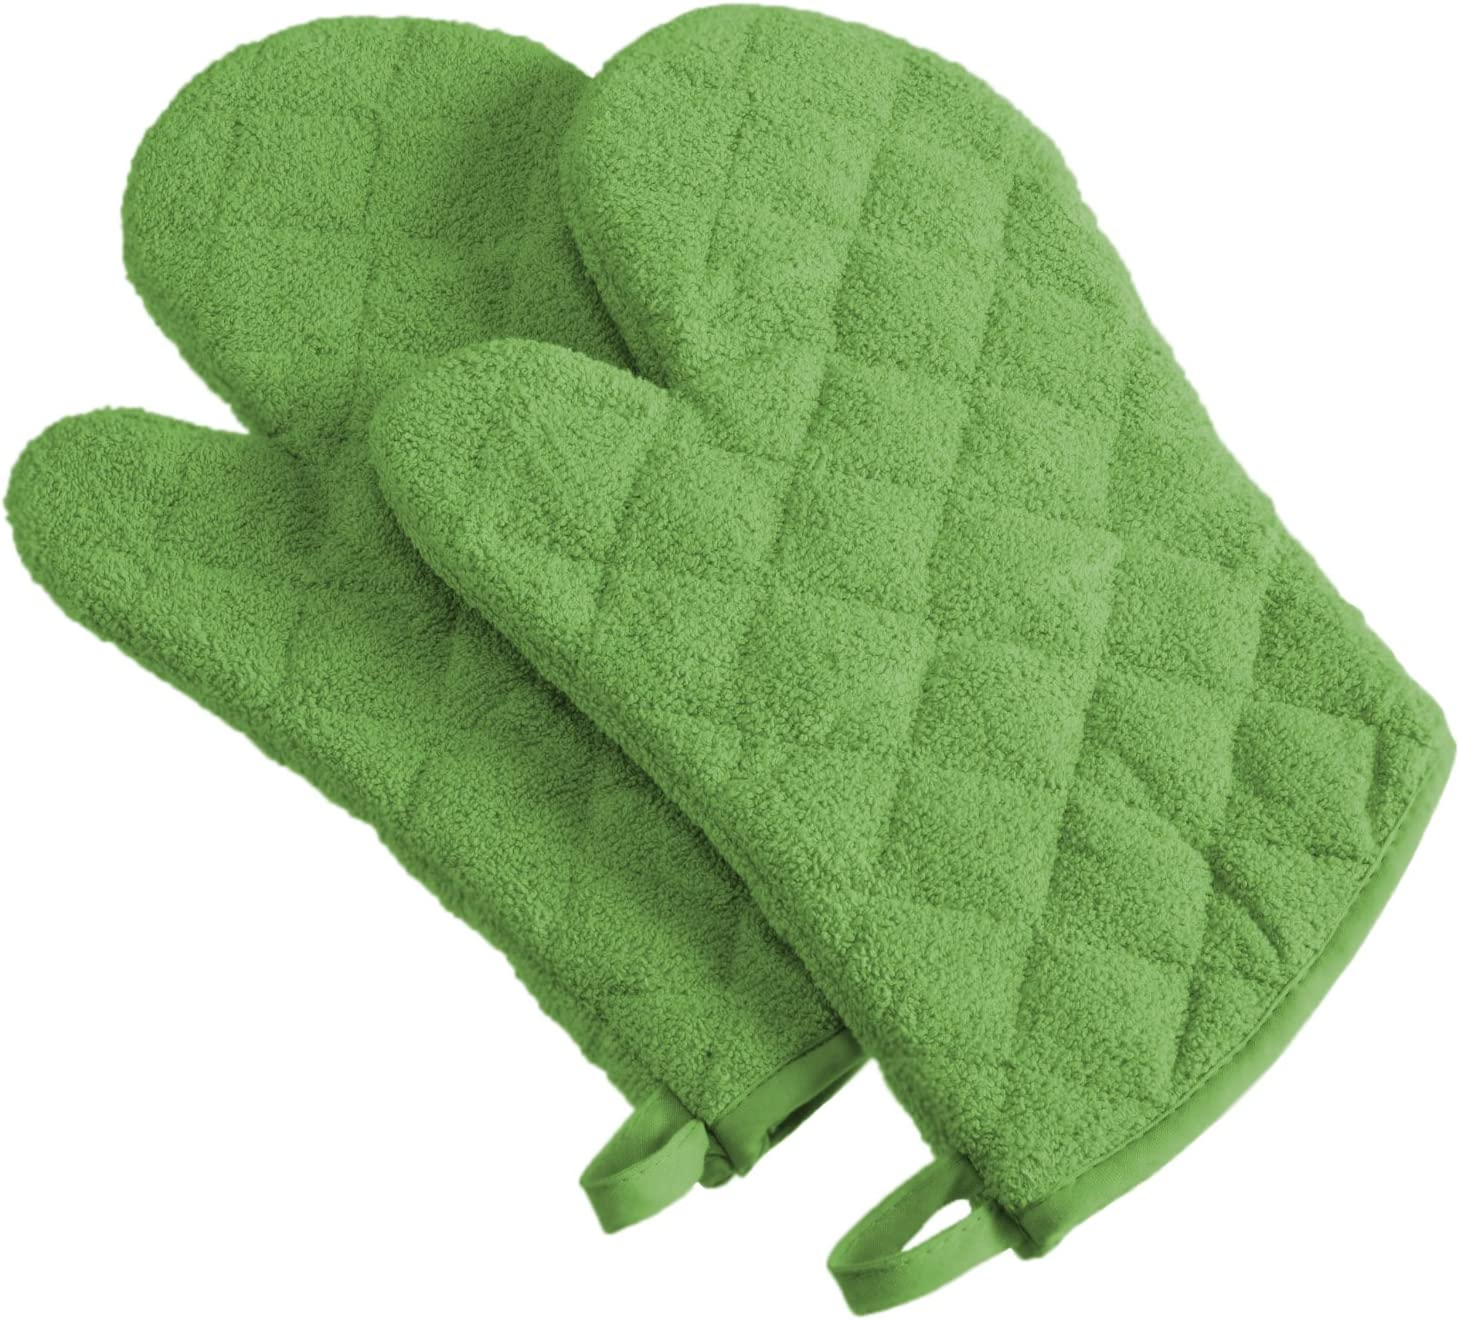 DII 100% Cotton Terry Oven Mitt Set, Ovenmitt, Green Apple, 2 Piece